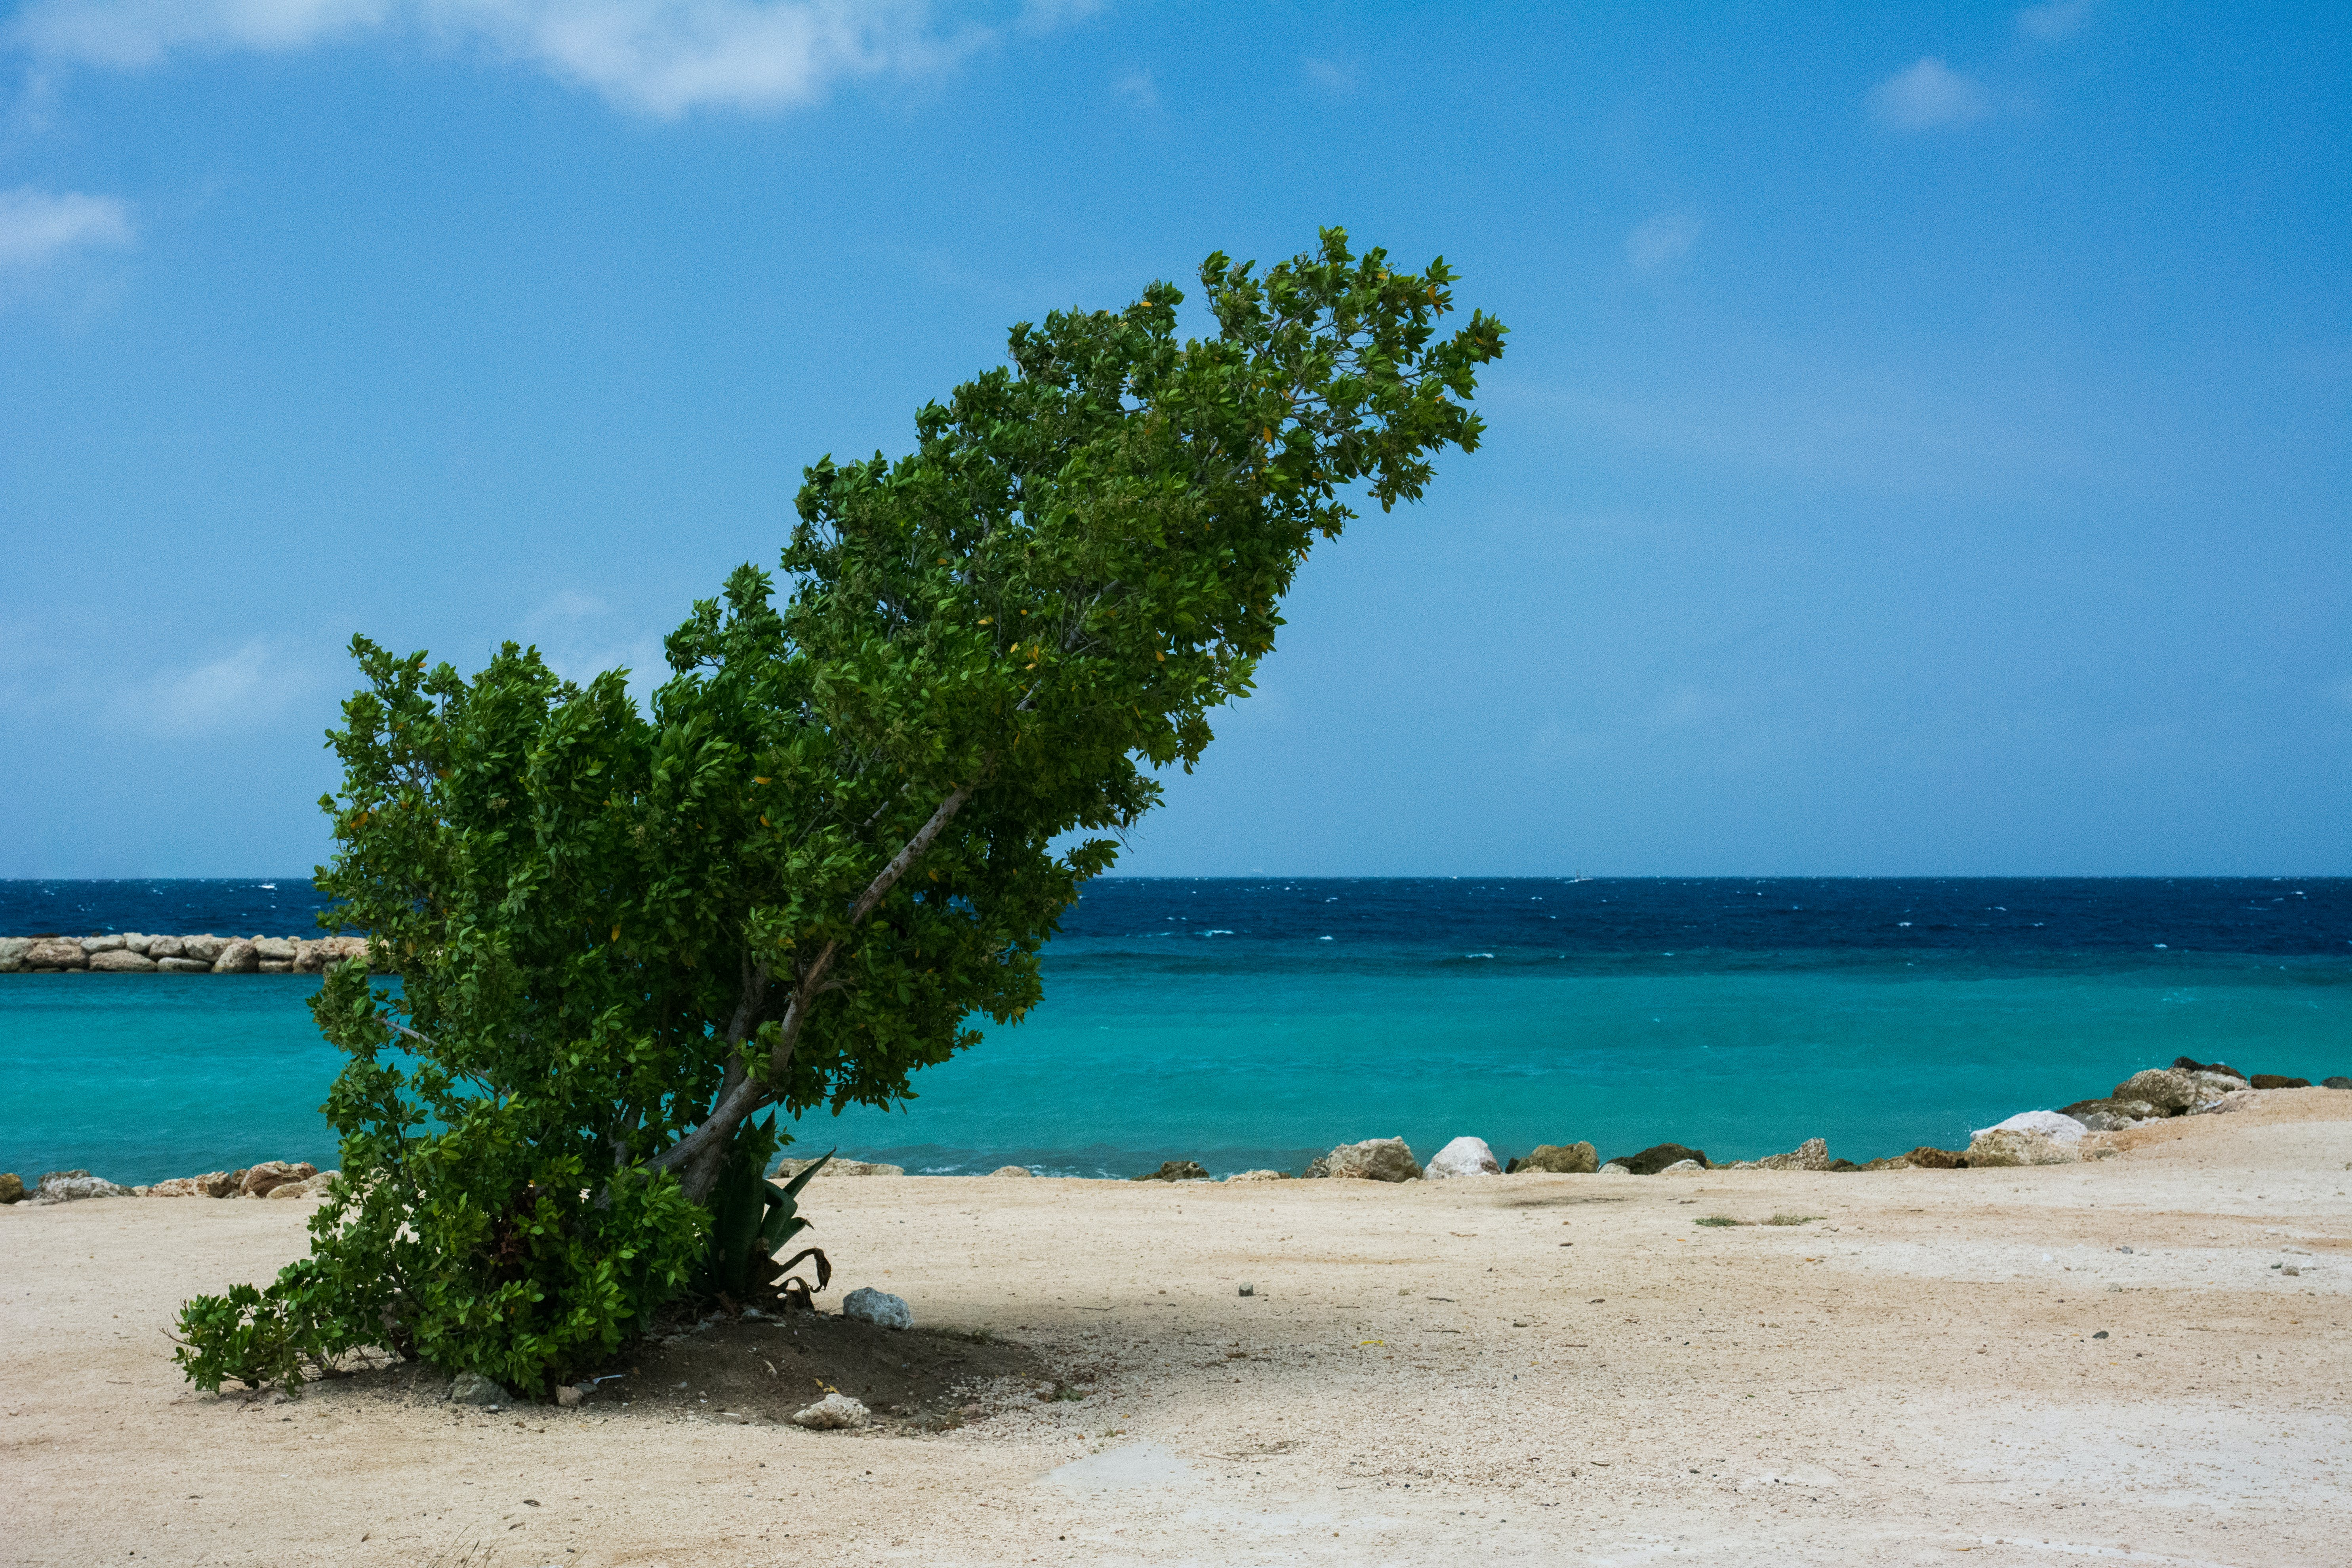 Green Leafed Tree Near Body of Water